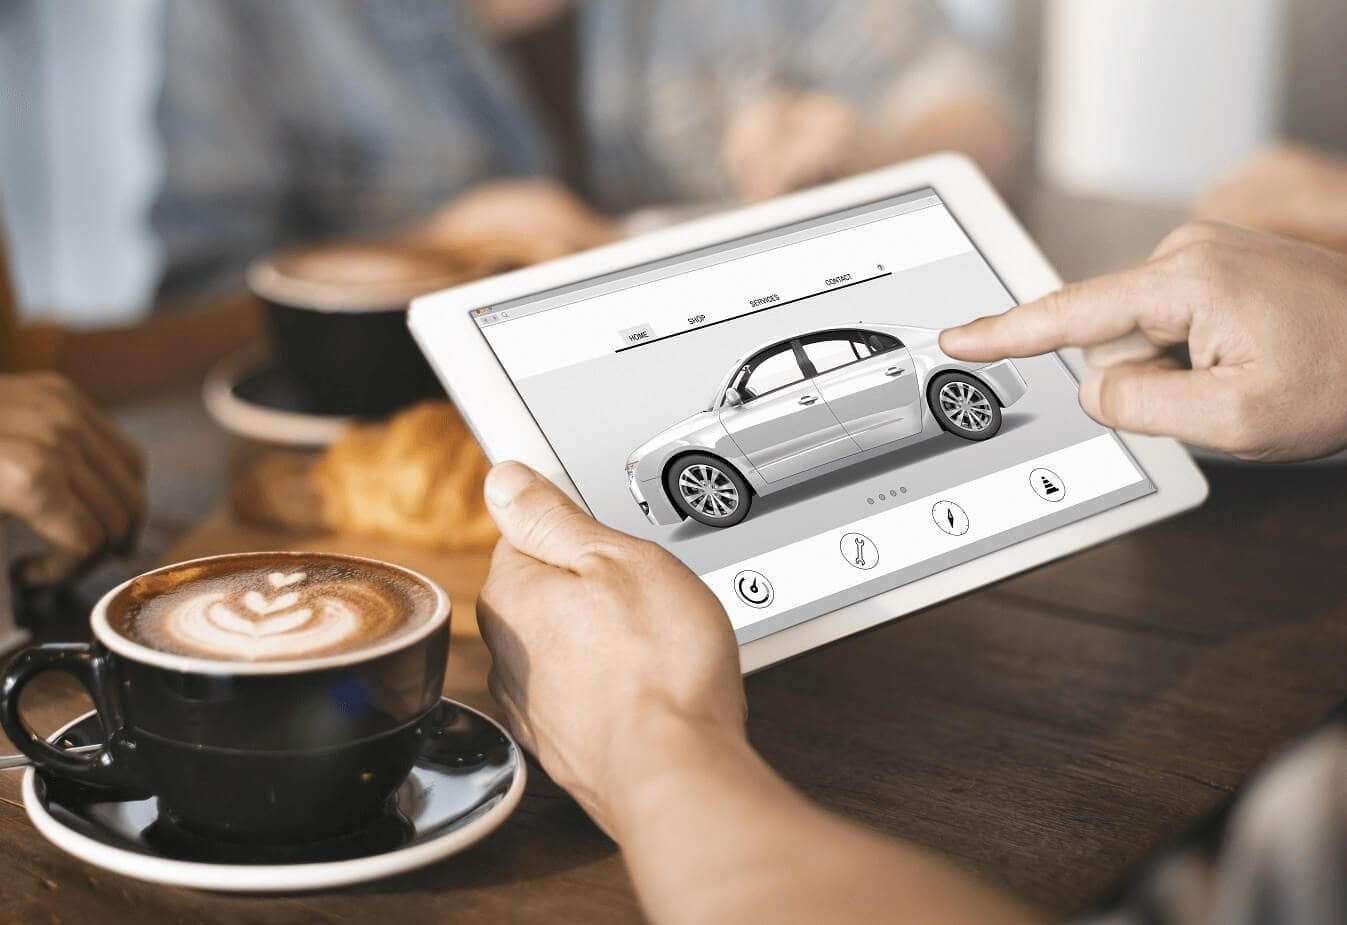 Consider Researching Certified Pre-Owned